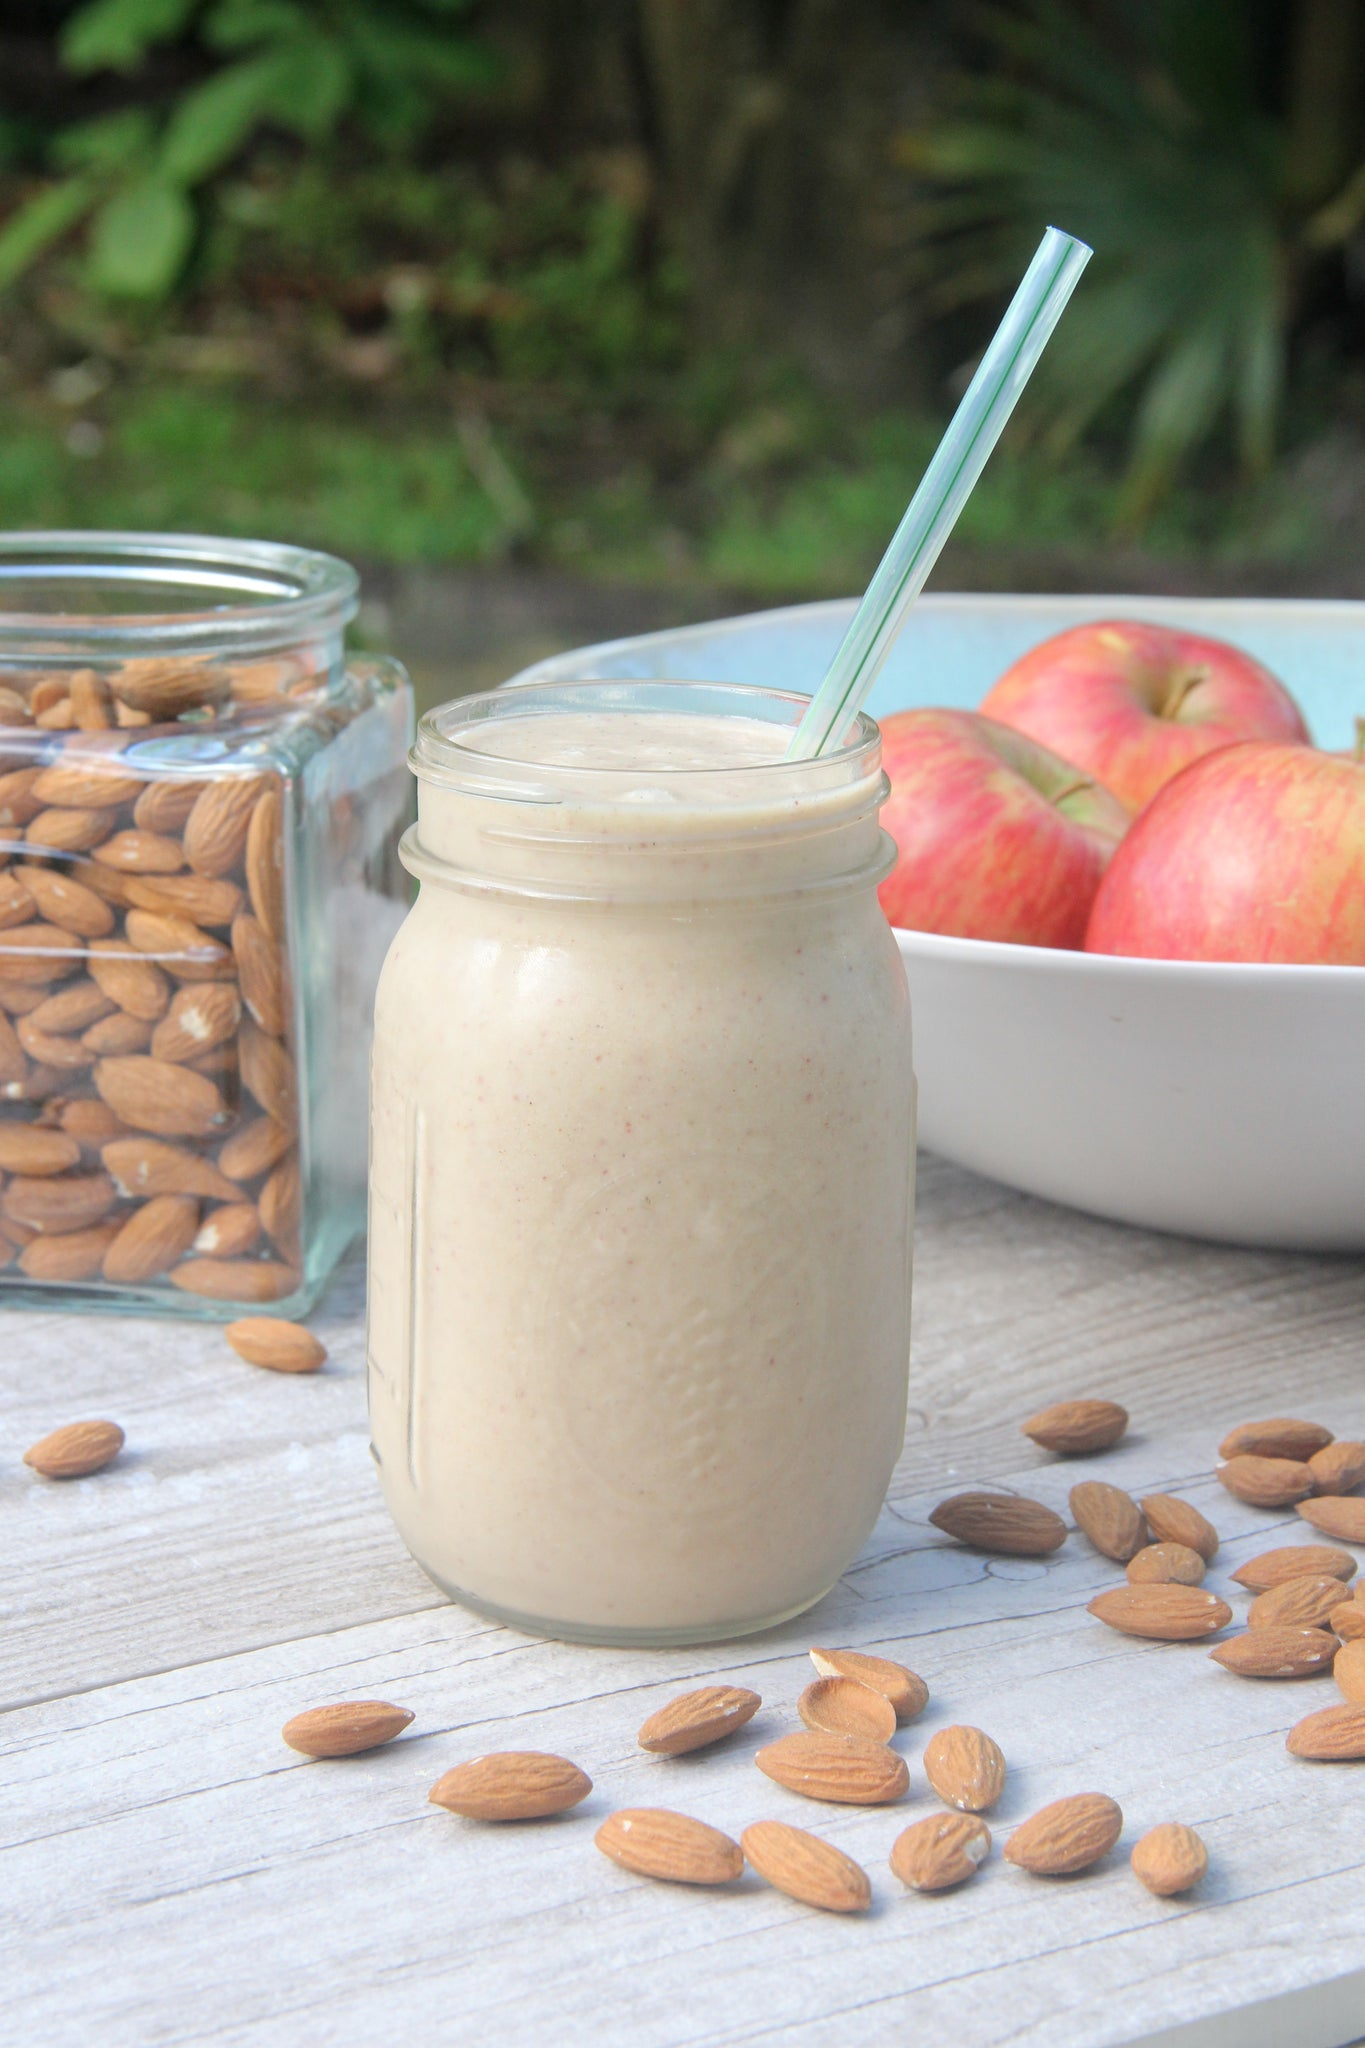 8-Ingredient Apple Pie Smoothie #healthy #vegan #smoothie #apple #recipe #dairyfree #sugarfree #glutenfree #begoodorganics